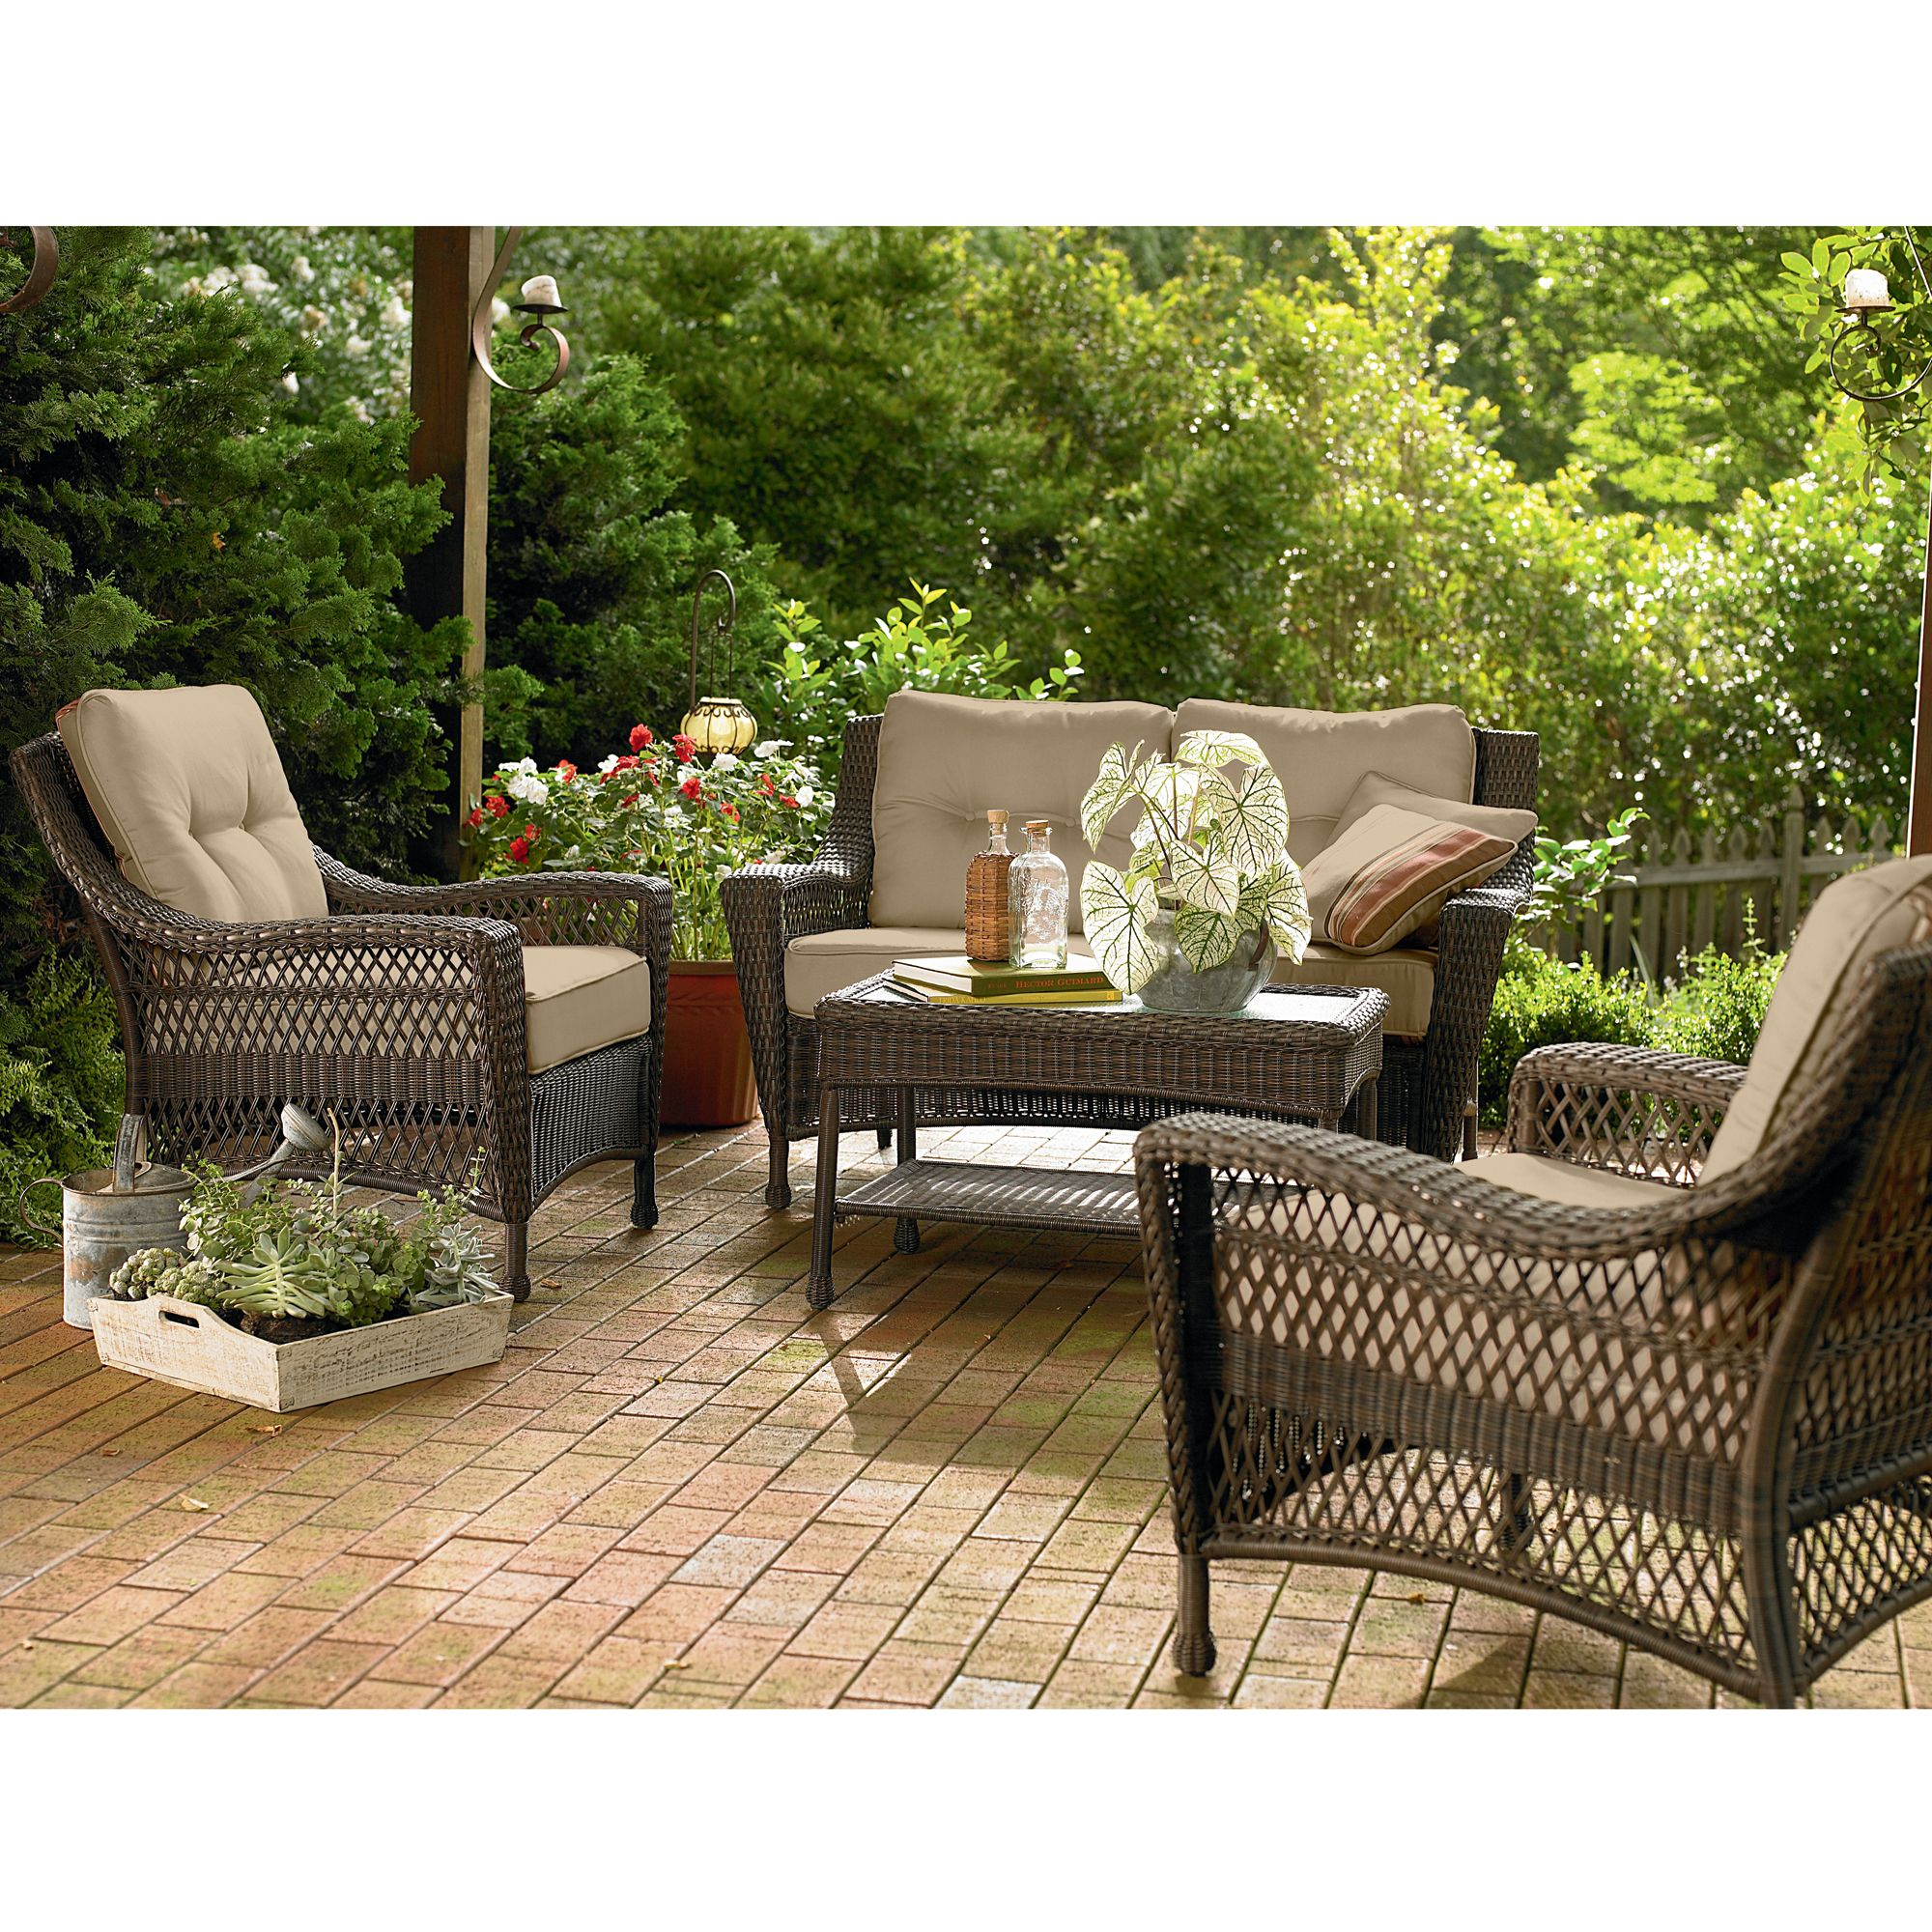 Sears Patio Furniture | Lowes Patio Sets | Sears in Store Coupon